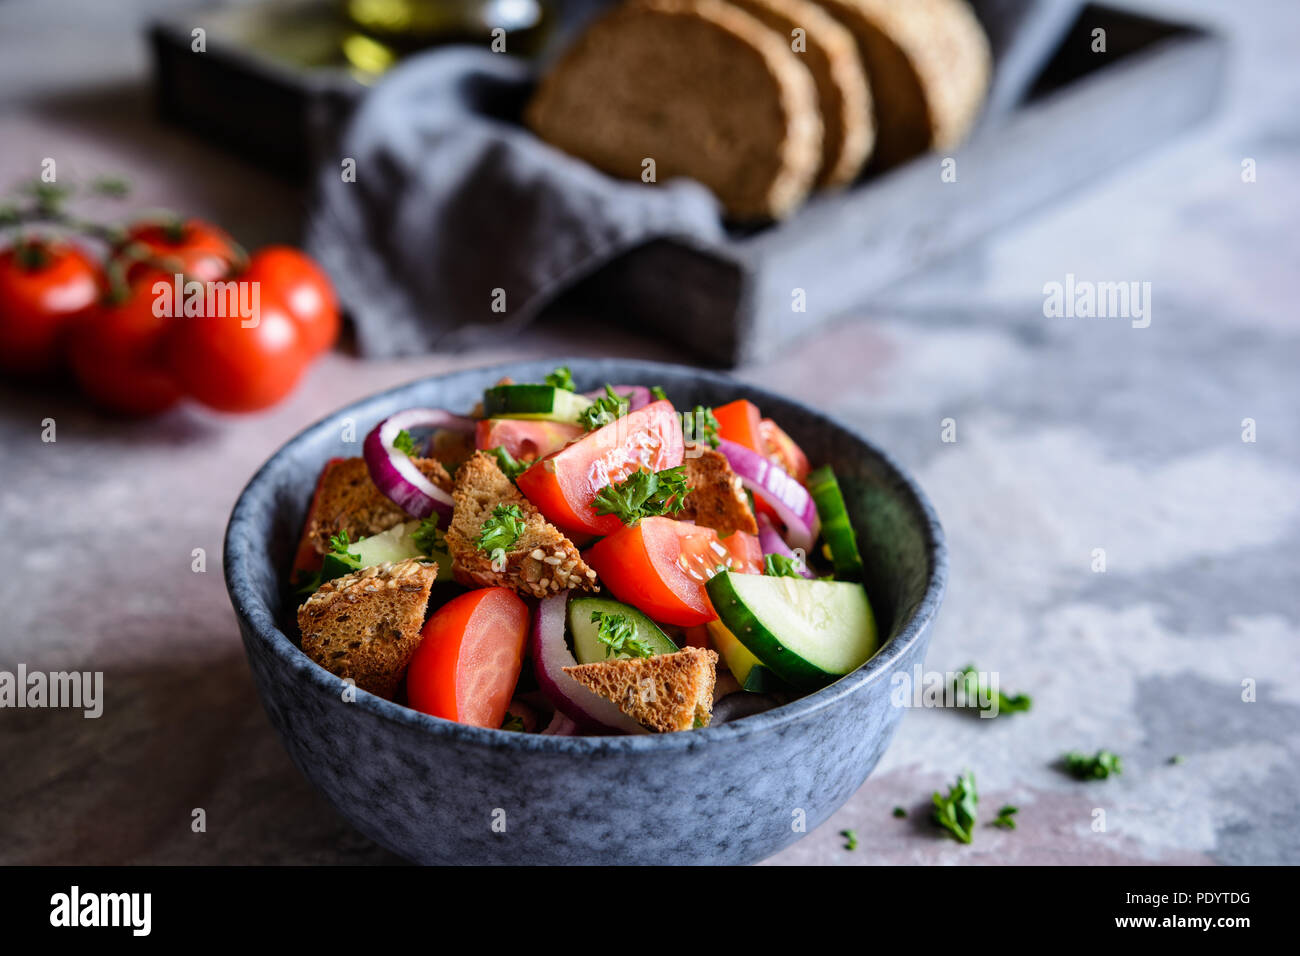 Panzanella - traditional Italian salad with cherry tomatoes, red onion, cucumber and bread croutons - Stock Image